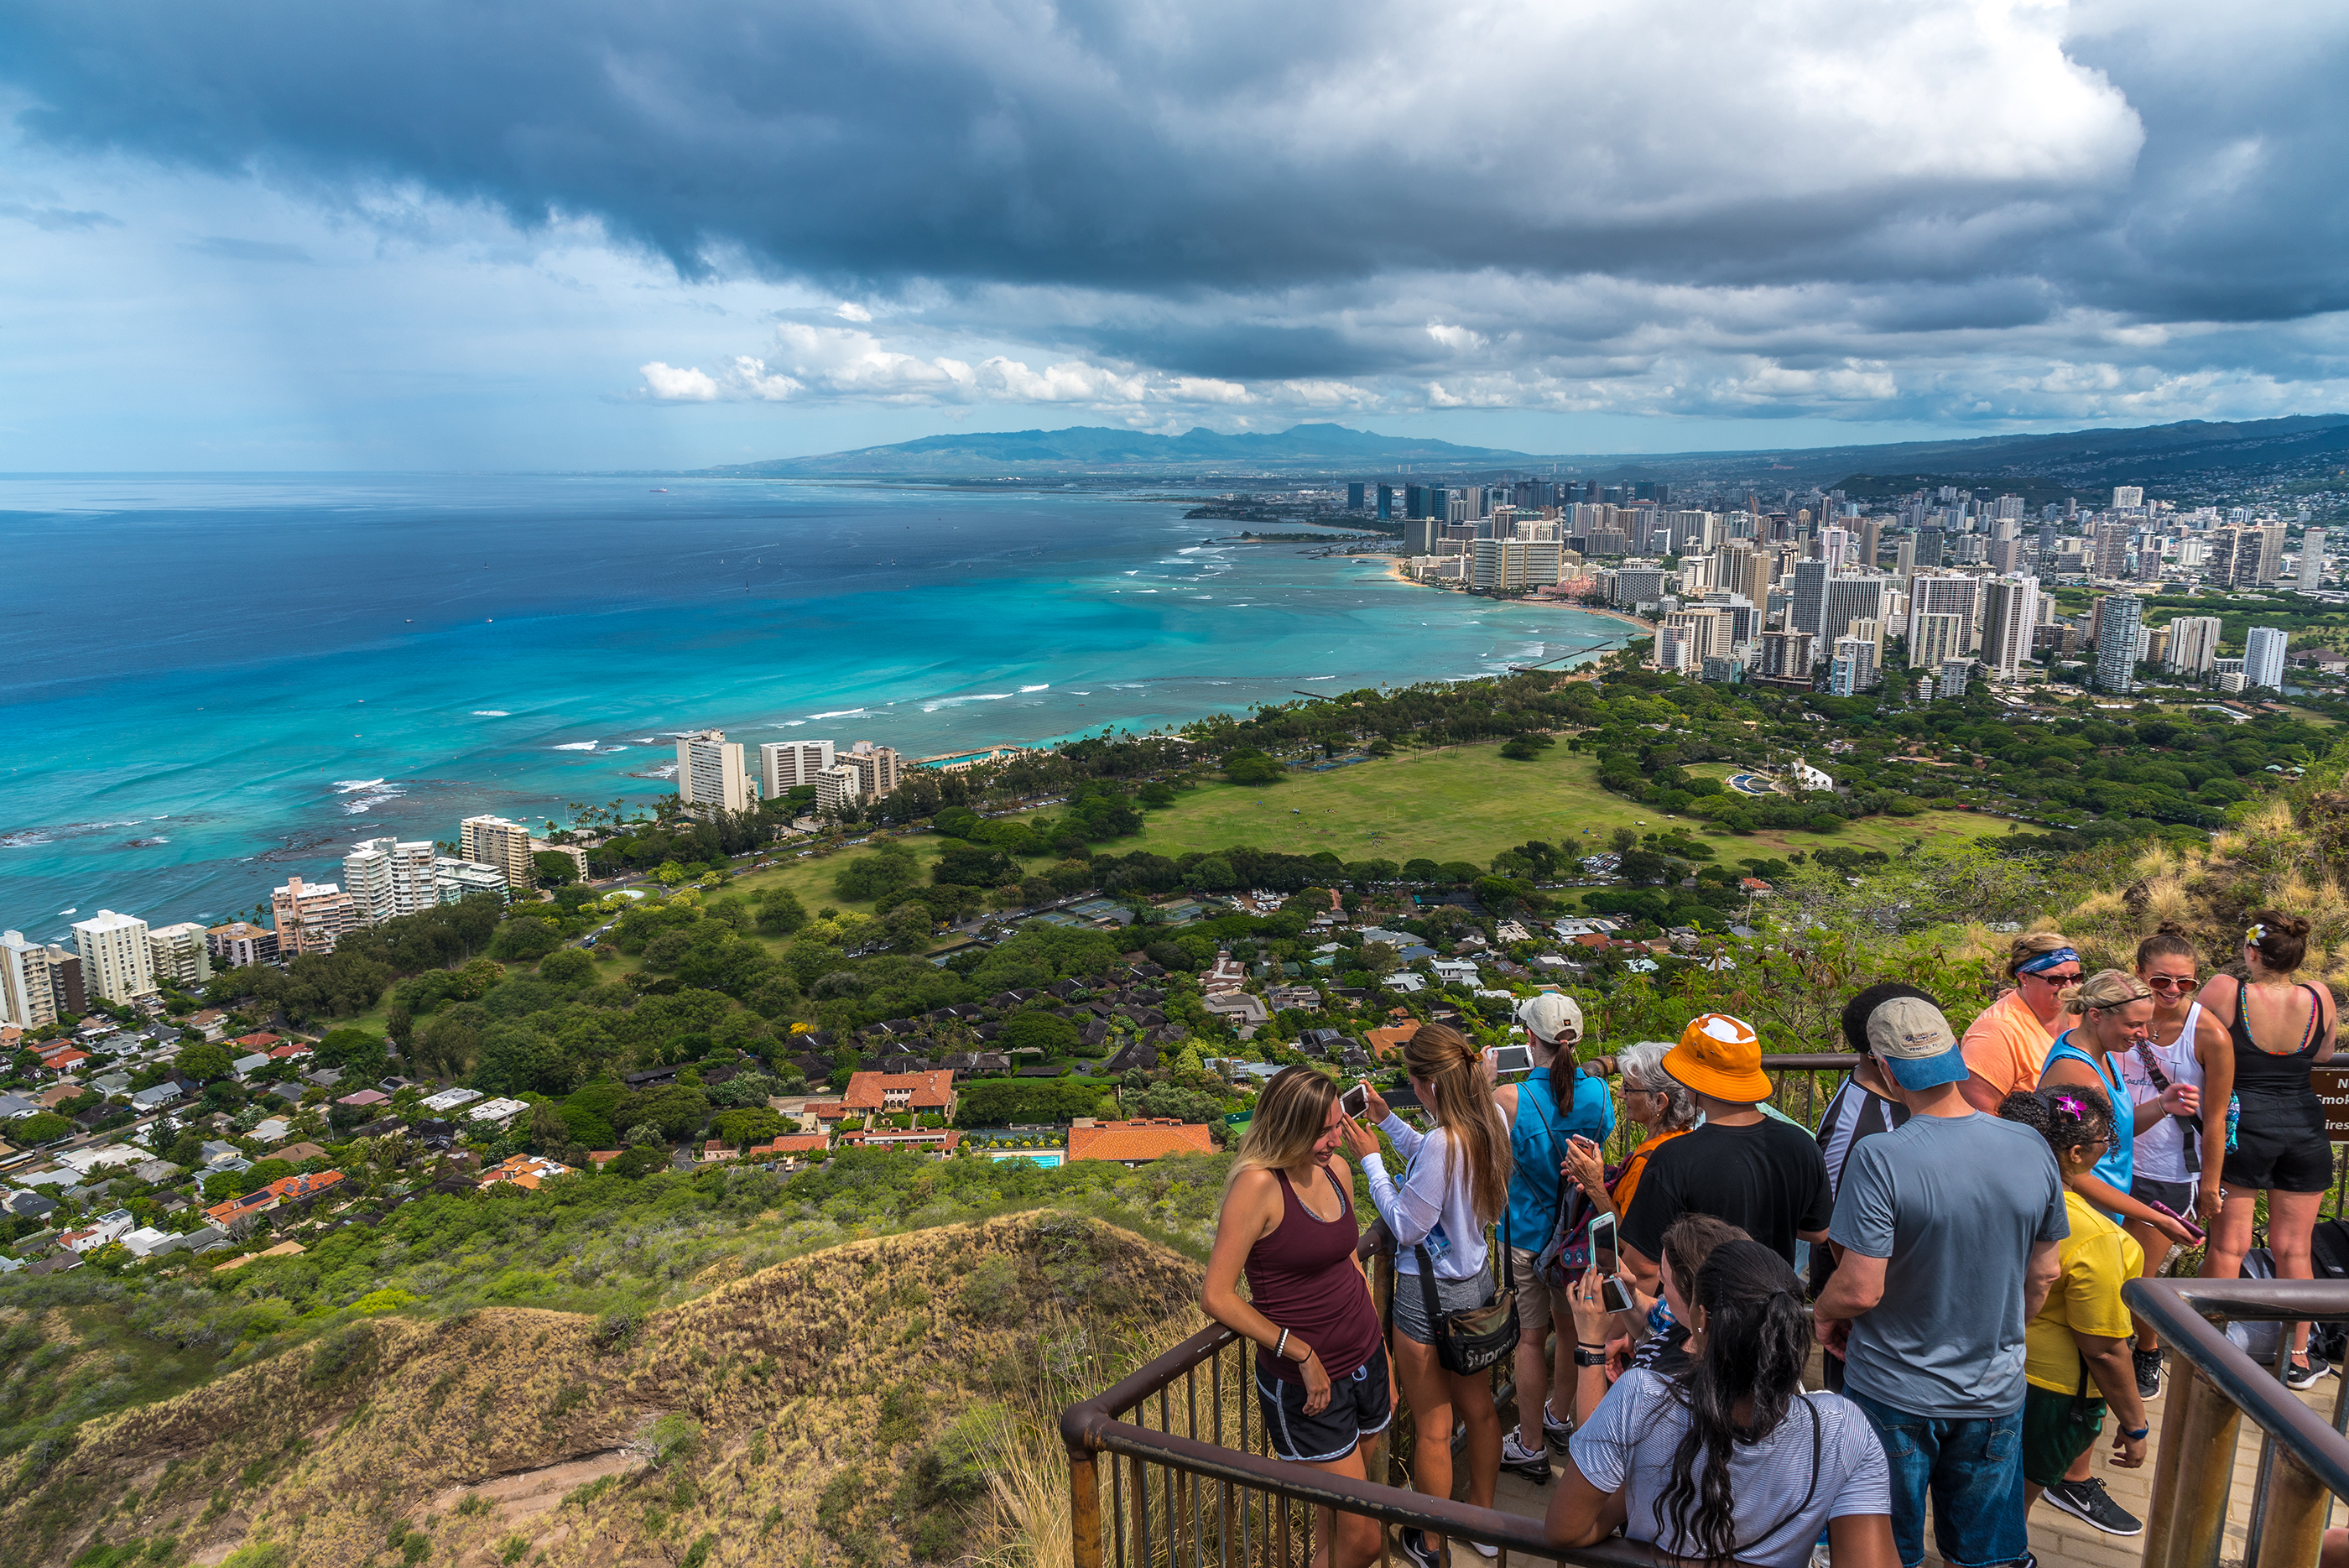 Agroup of tourists take selfies and photos of Waikiki and greater Honolulu from the top of the Diamond Head crater landmark.